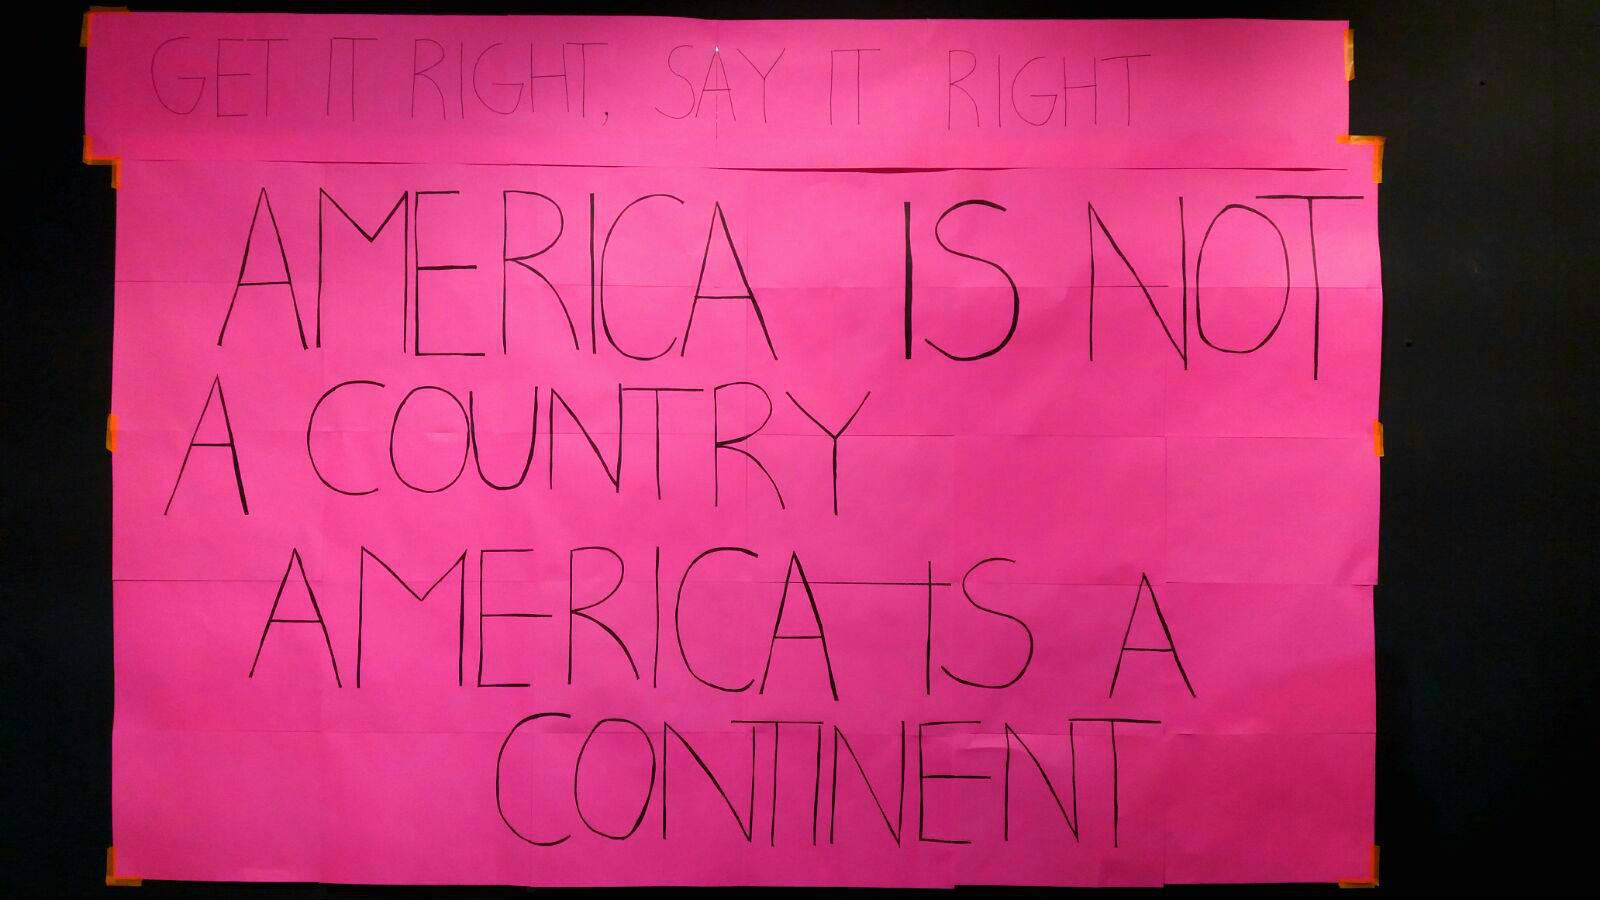 America is not a country.jpg